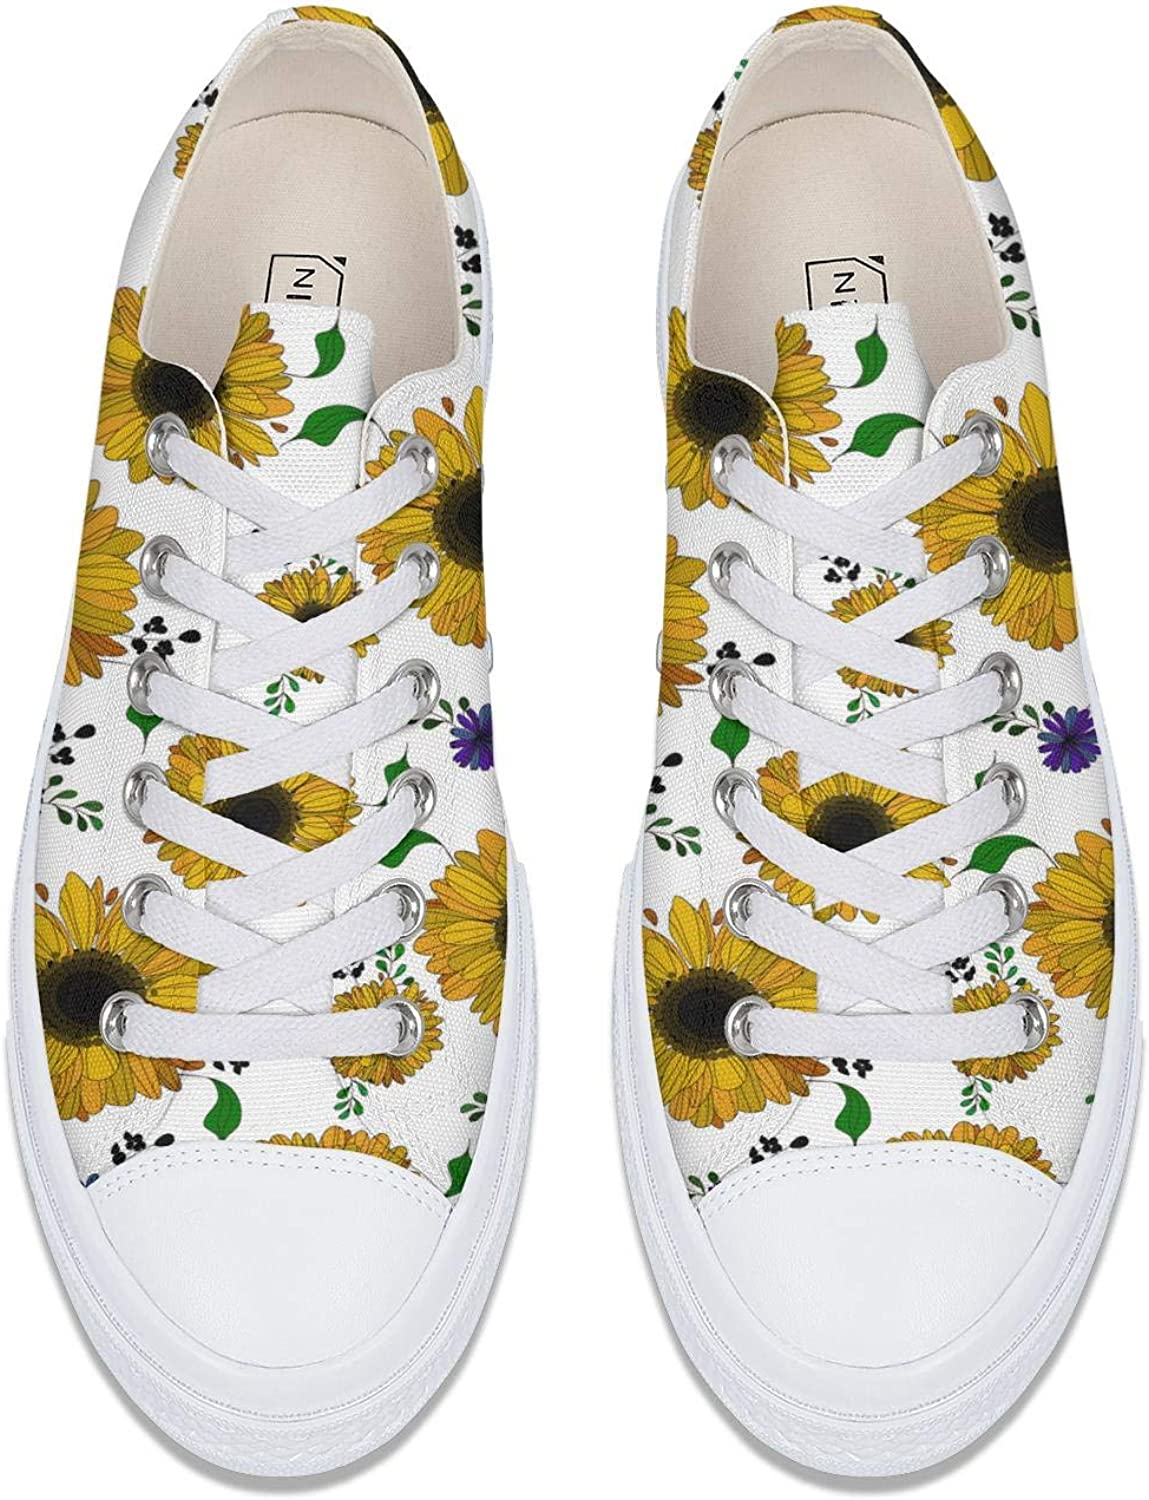 ZJING Yellow Sunflowers White Background Womens Canvas Shoe Lace Up Skate Shoes Unique Outdoor Sneakers